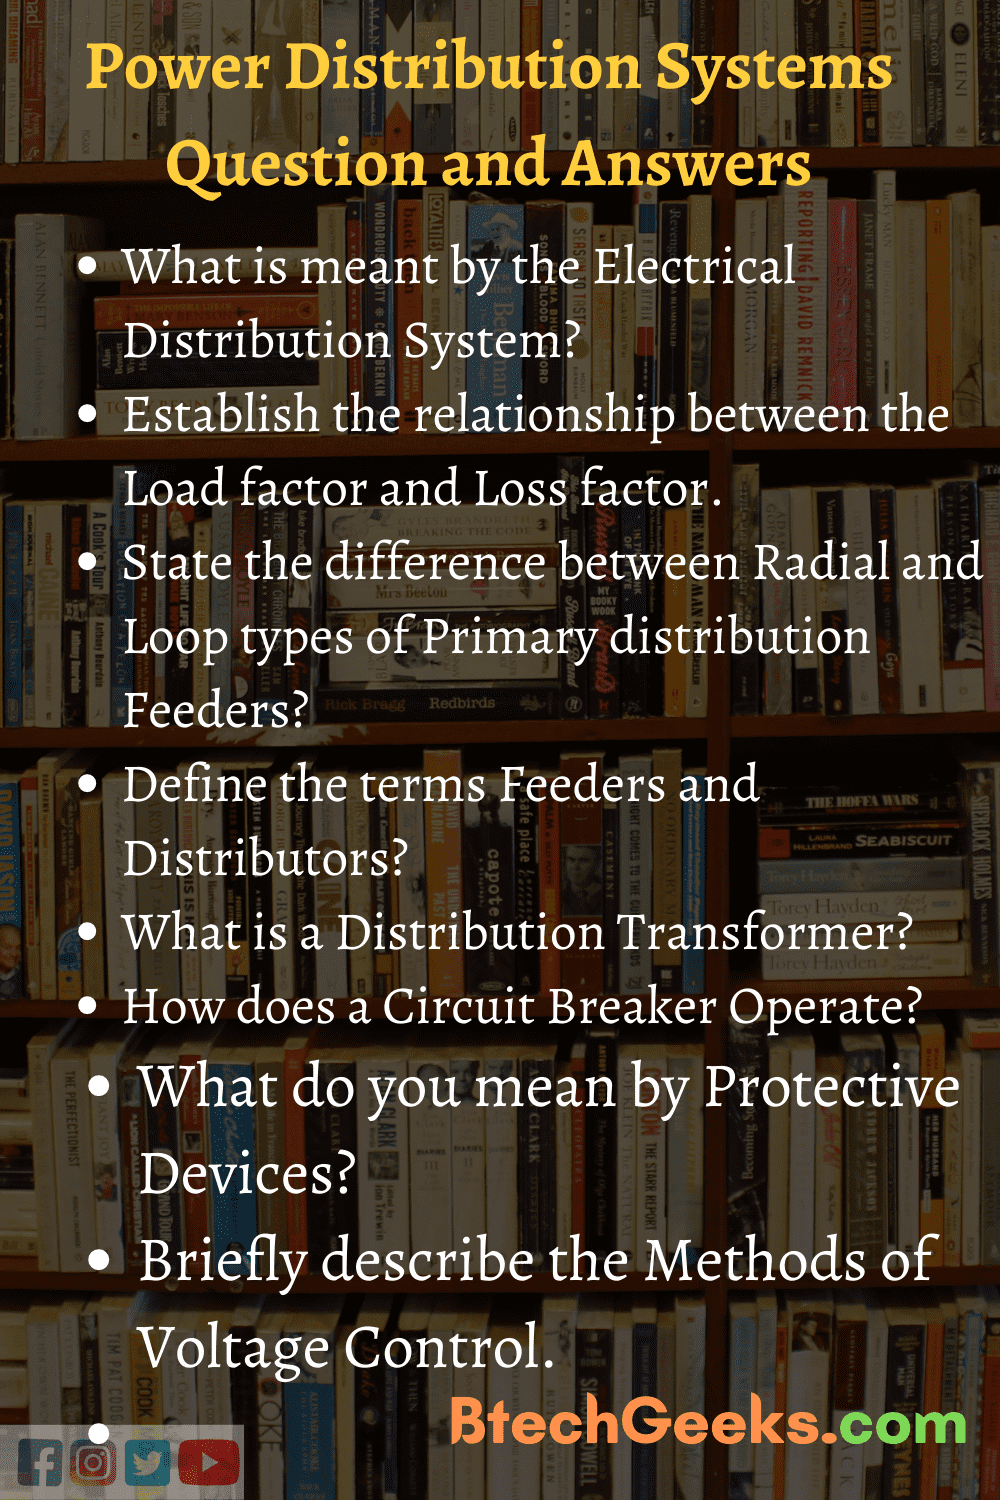 Electrical Distribution Systems Important Questions and Answers